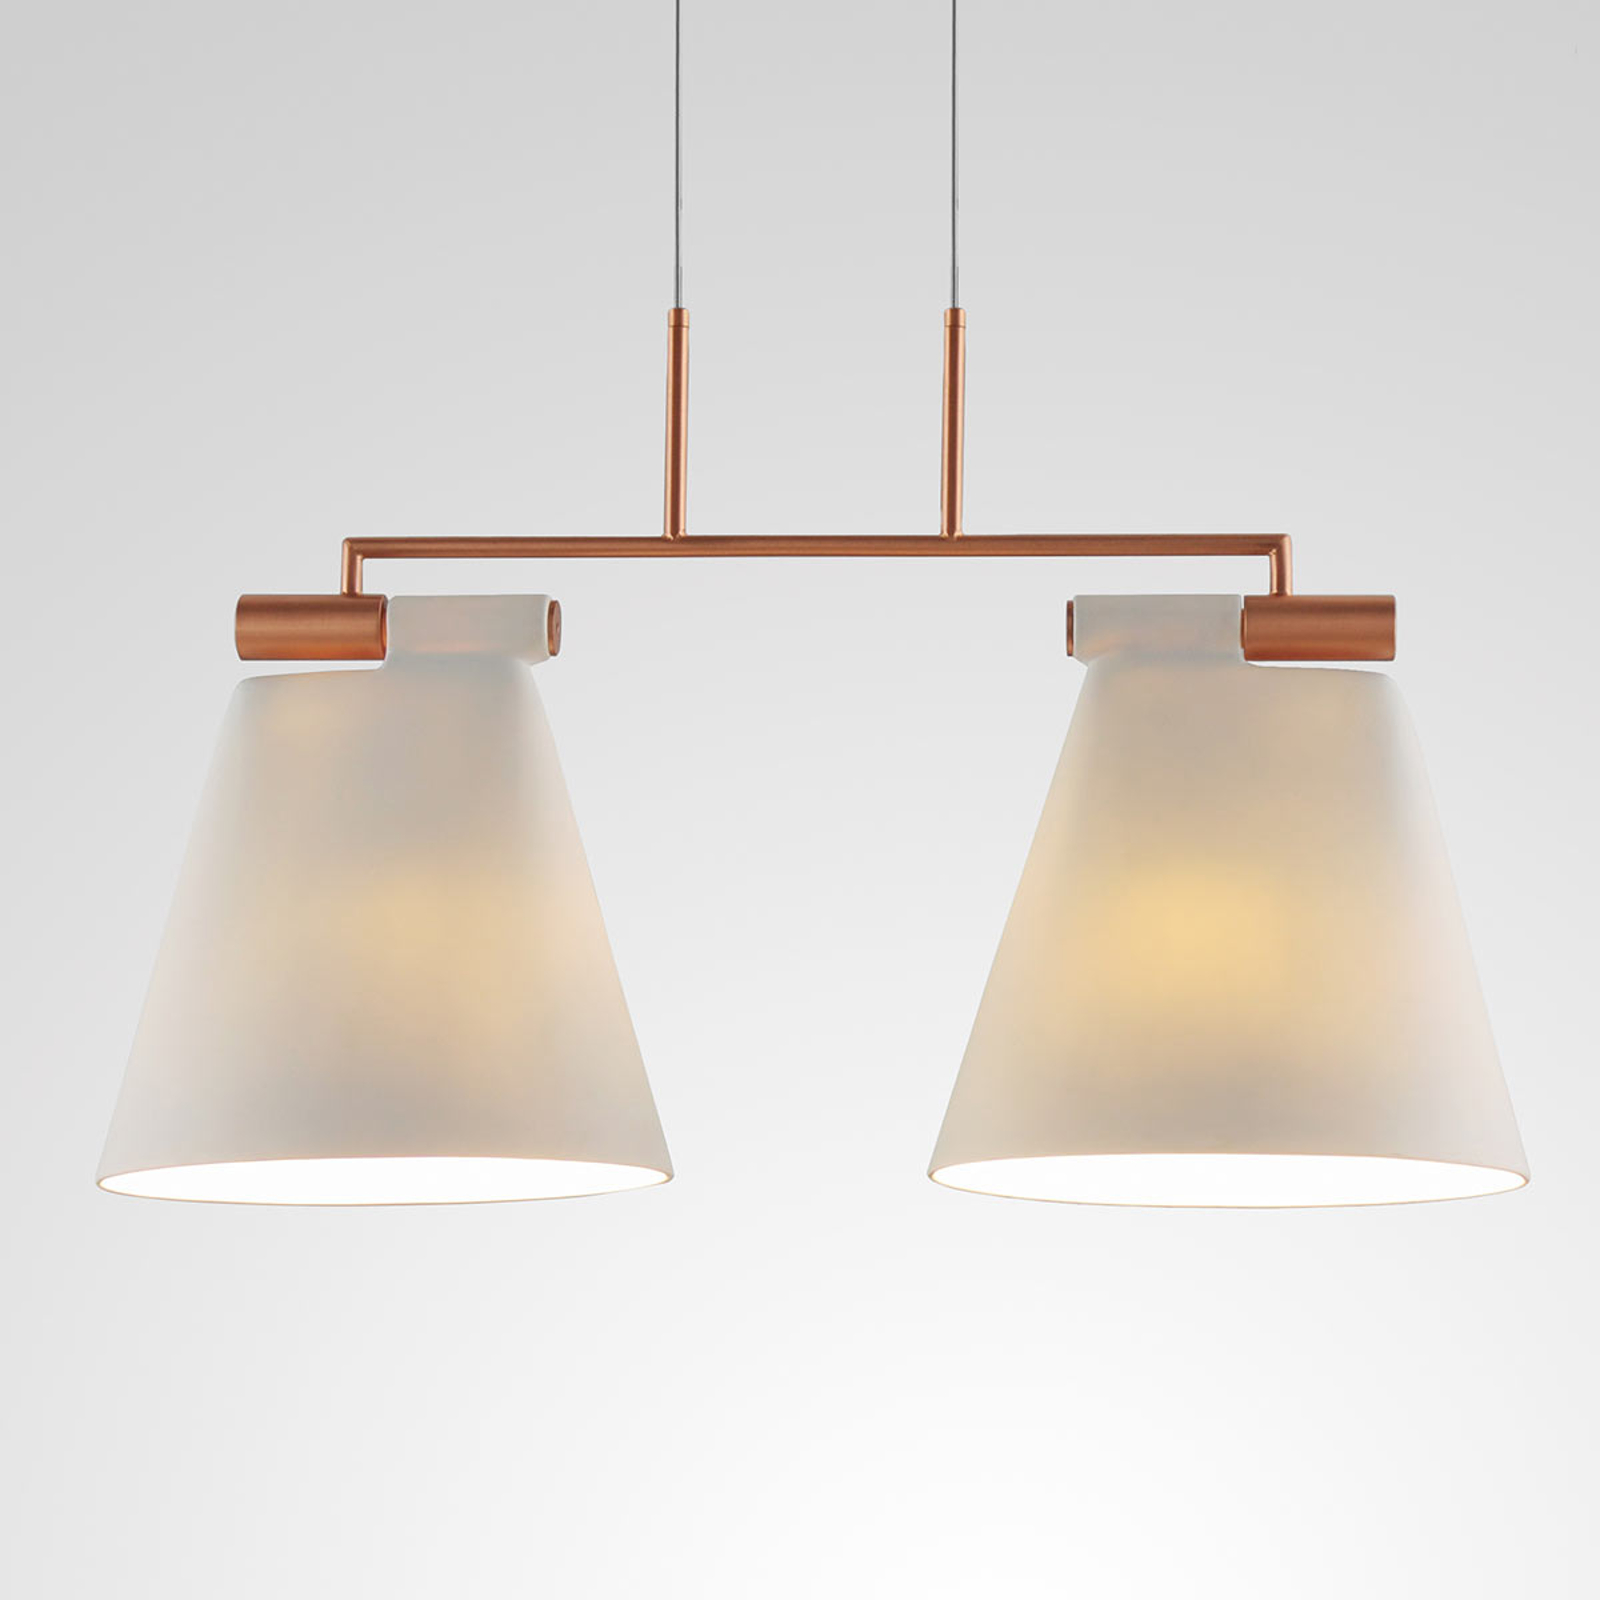 Pendellampe Cone Light S2 med to lys